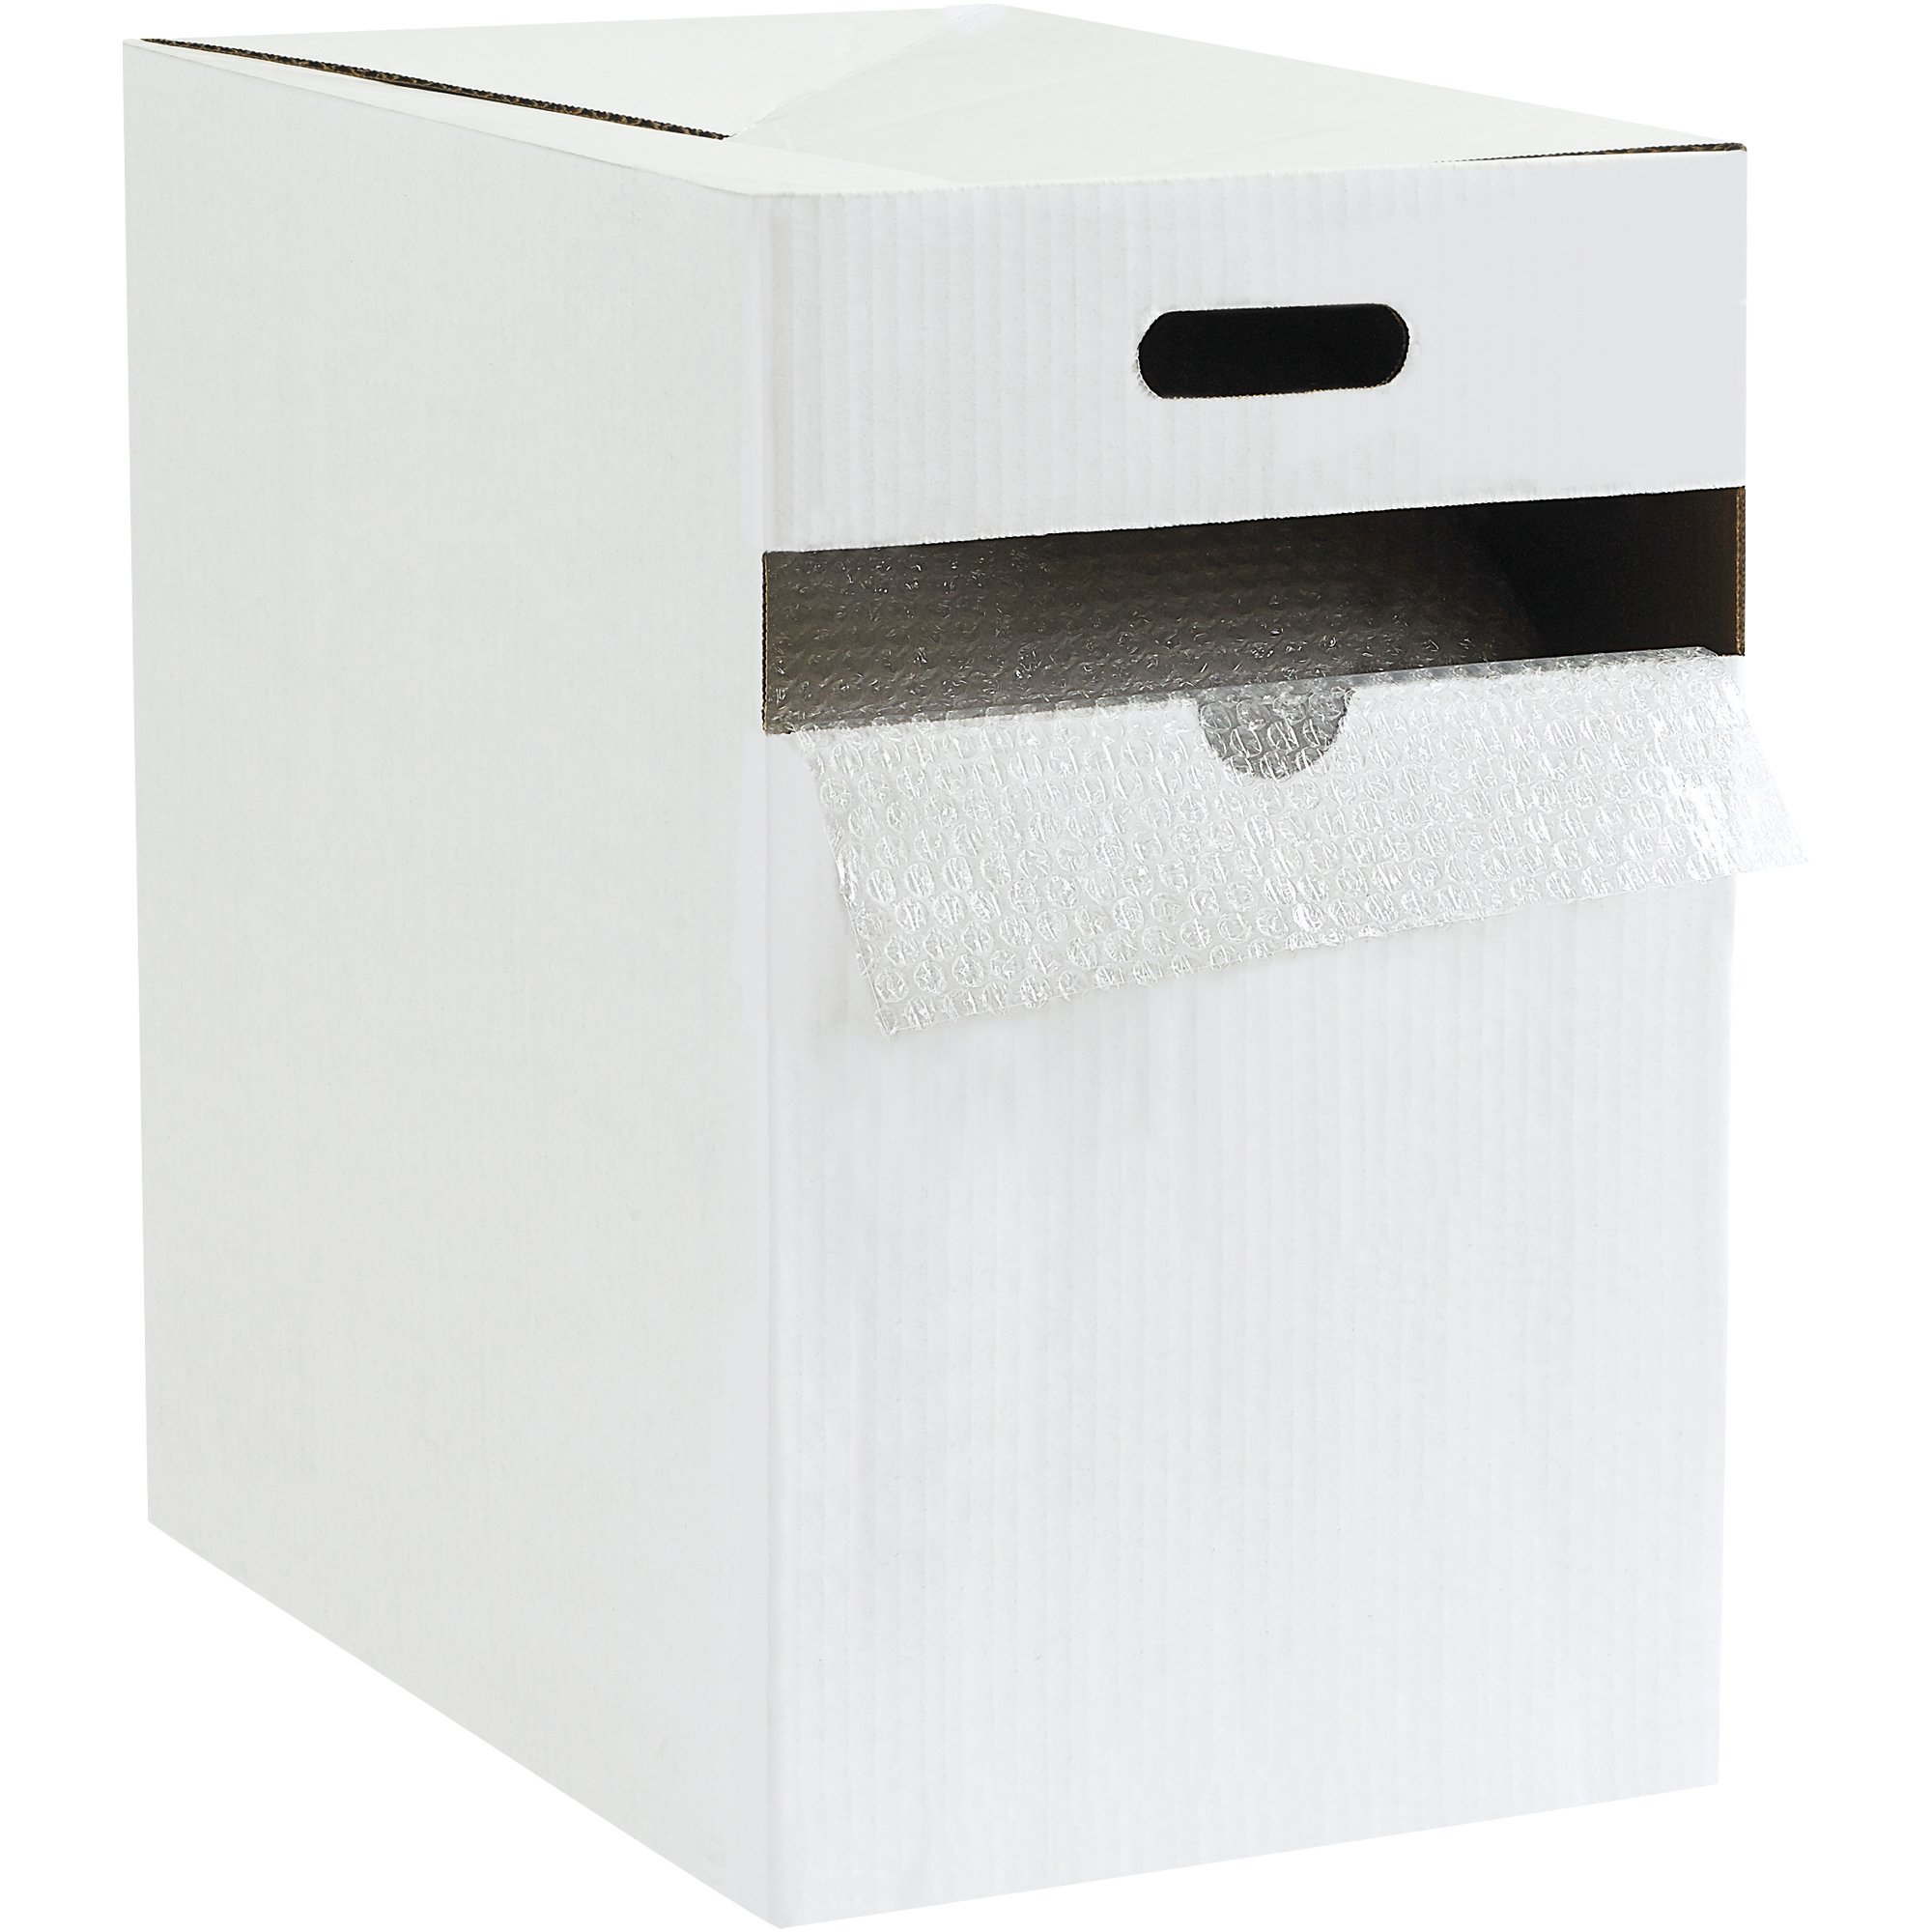 Boxes Fast BFBDAD31612 Adhesive Air Bubble Dispenser Pack, 3/16'' x 12'' x 175', Clear (Pack of 1)